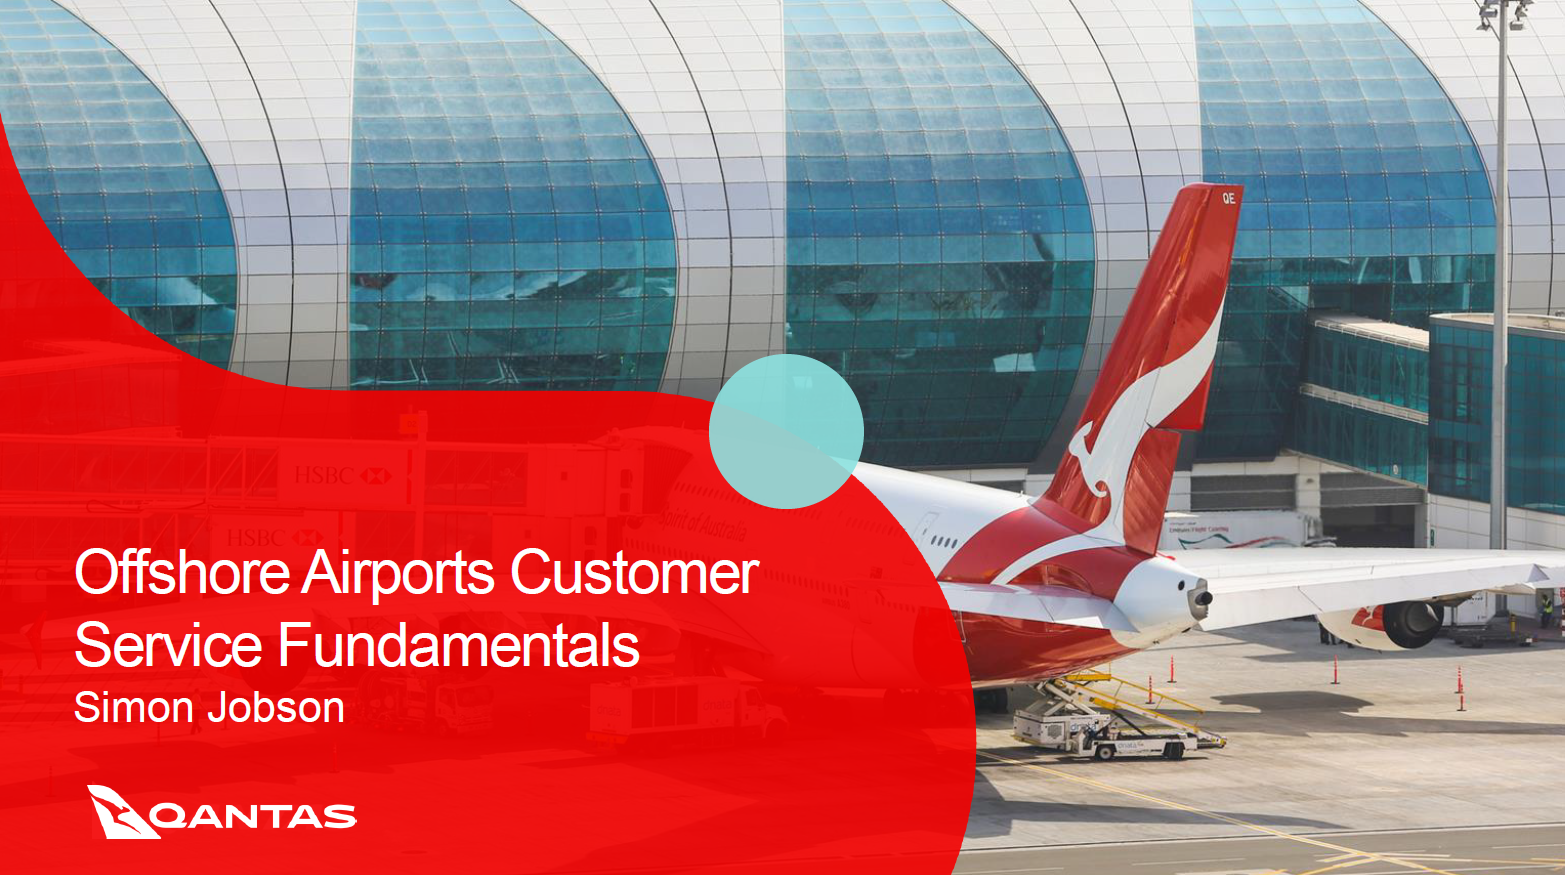 Offshore Airports Customer Service Fundamentals